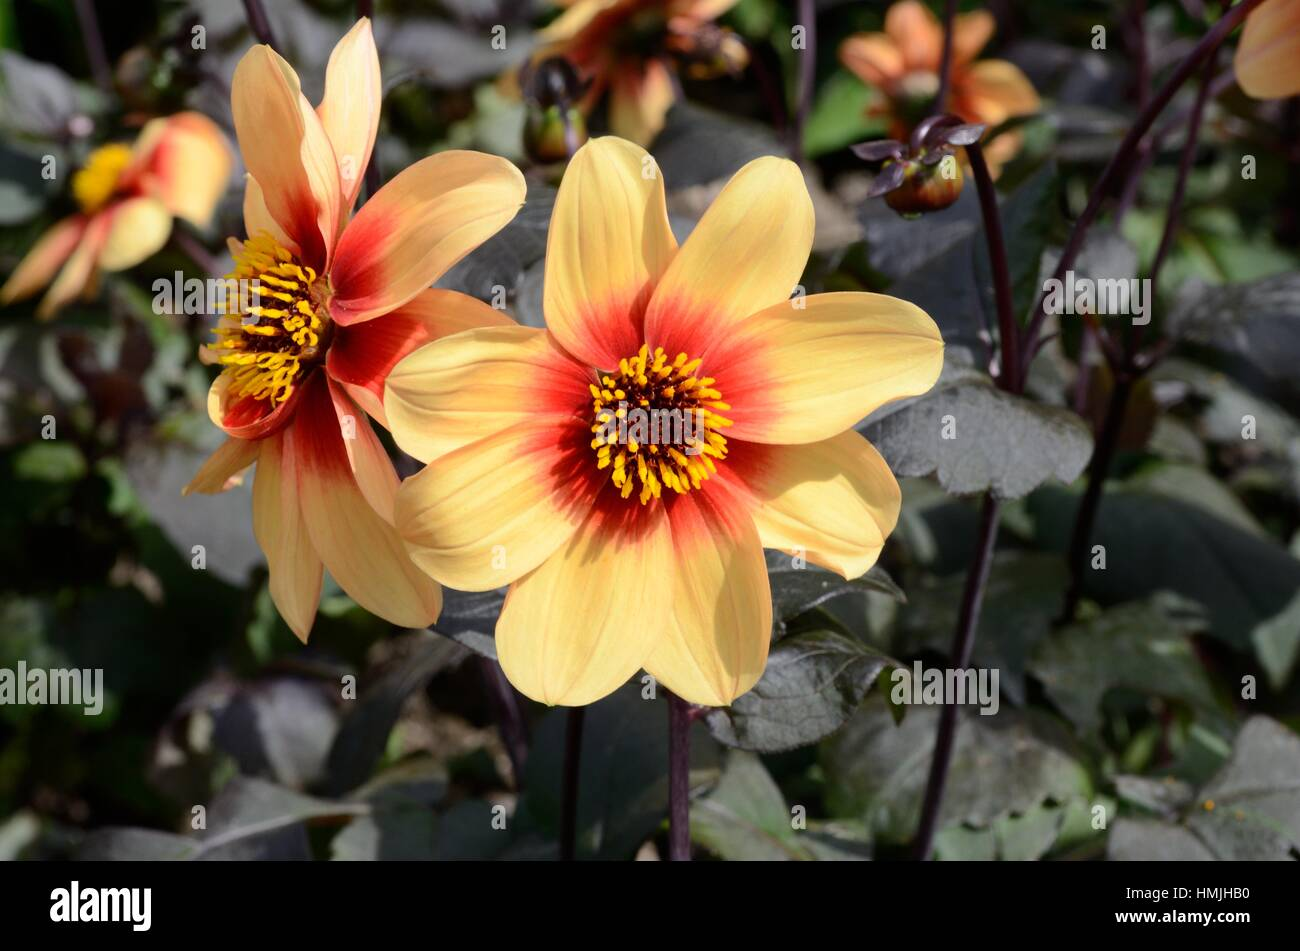 Dahlia Moonshine flowers flower yellow petals with red gentre - Stock Image